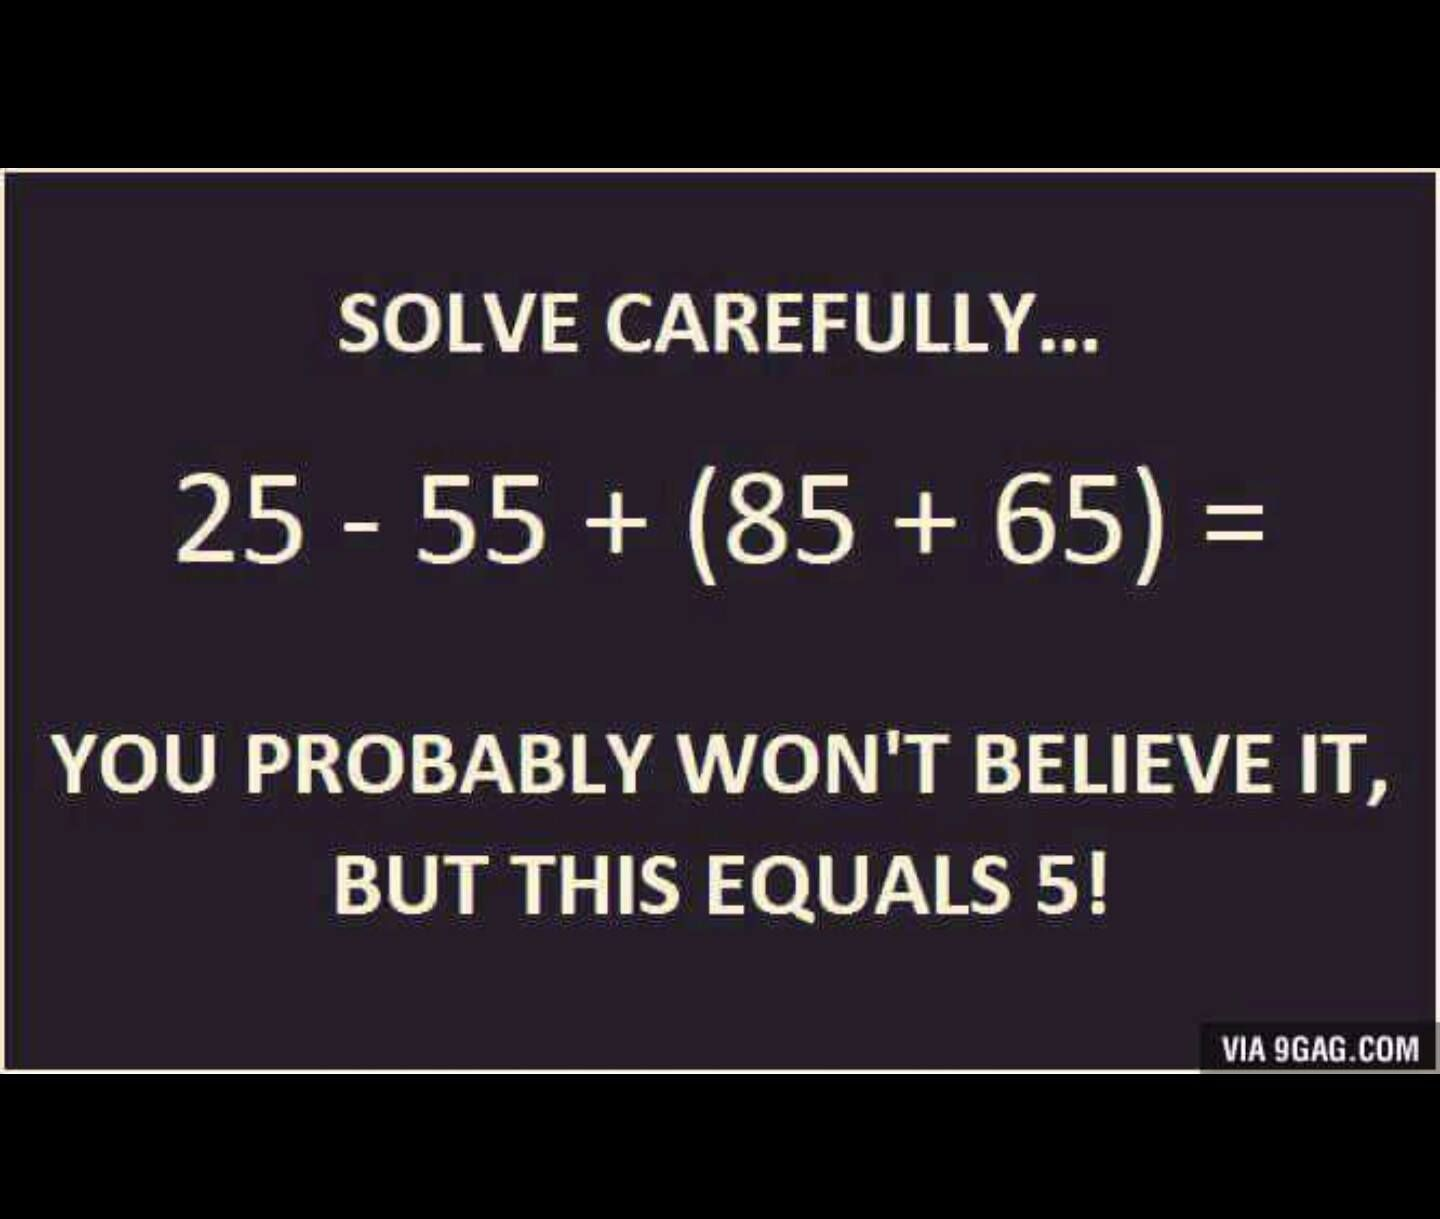 Math Humor The Exclamation Mark Is A Mathematical Function 5 Factorial 5 5x4x3x2x1 120 Therefore 25 55 150 12 Math Humor Educational Technology Math